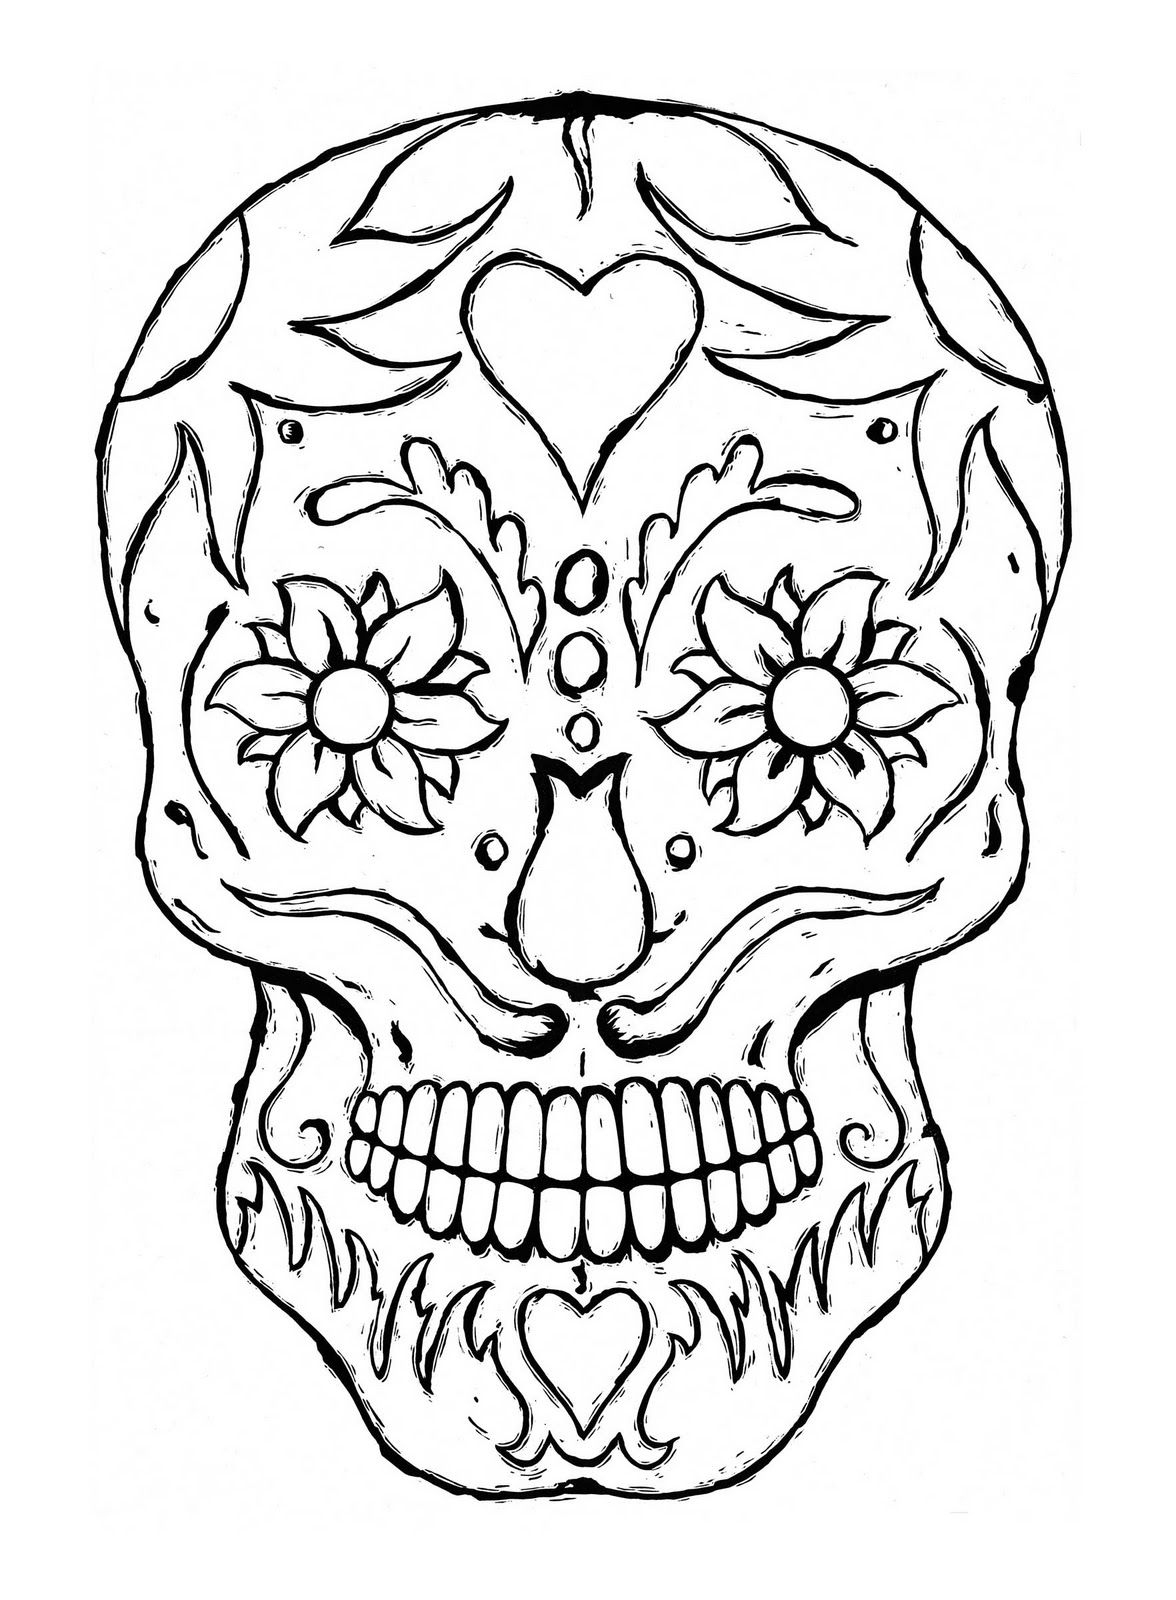 skull coloring pages - free printable skull coloring pages for kids